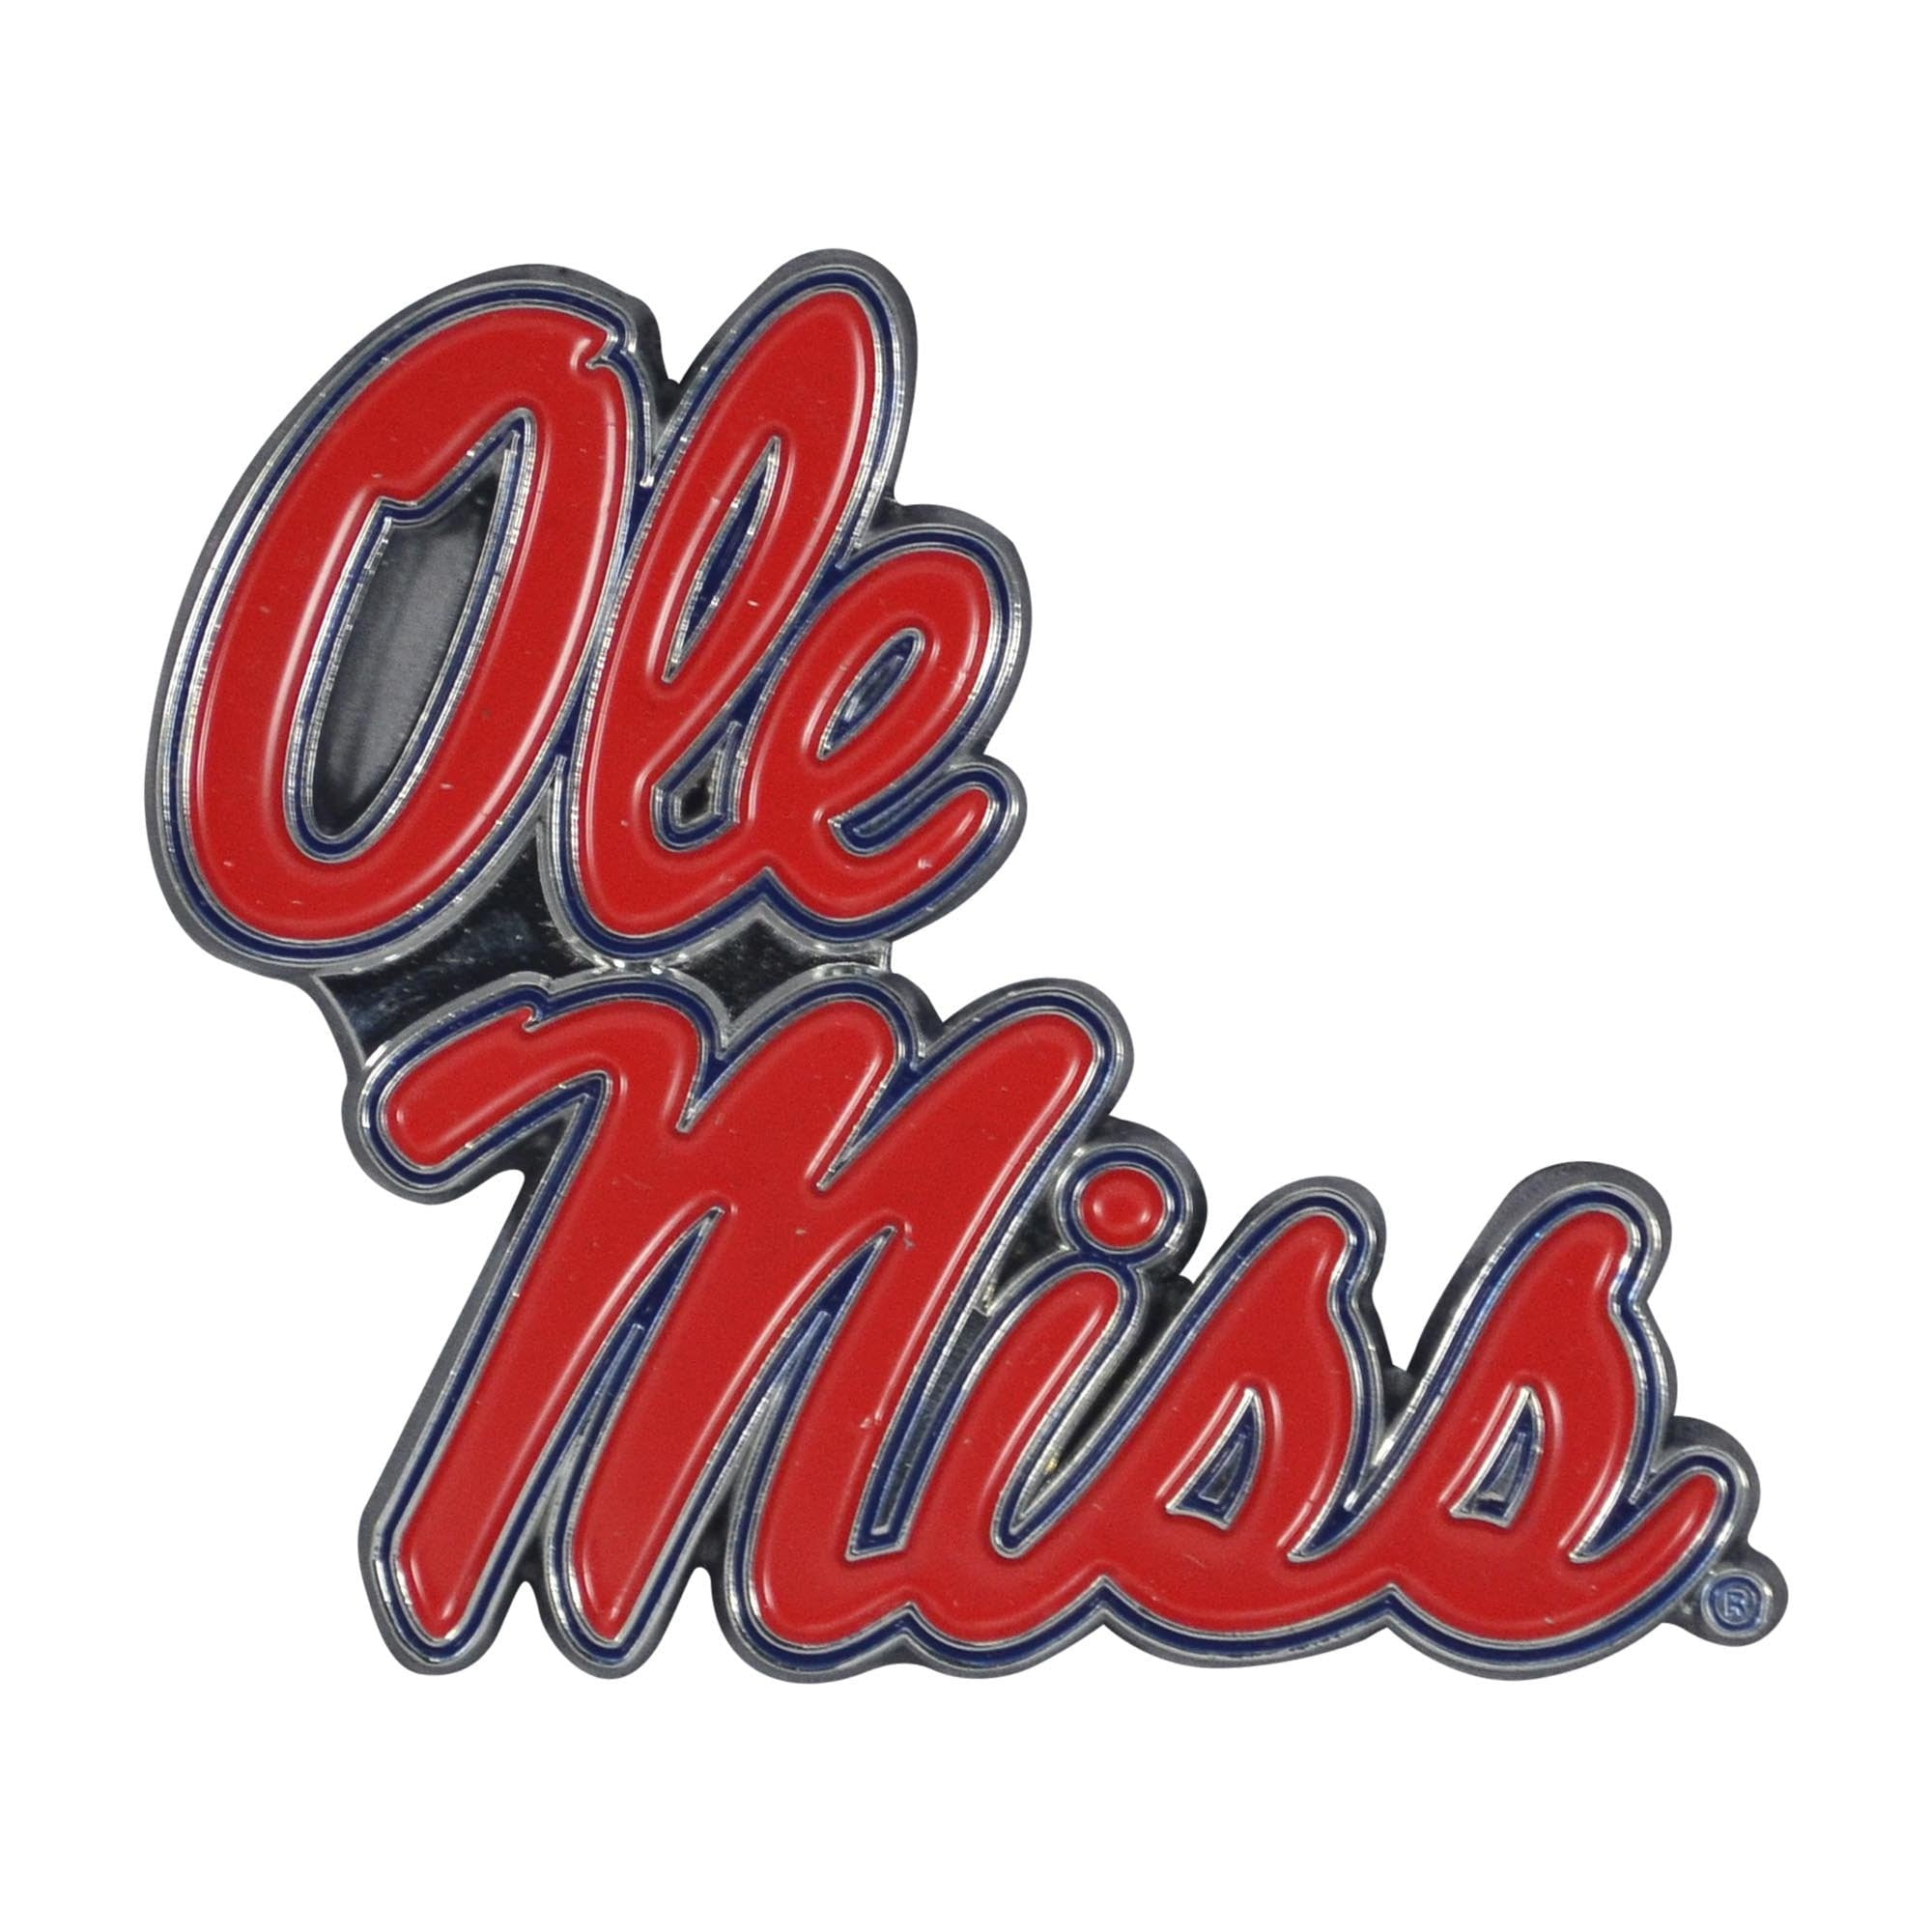 Ole Miss Rebels 3D Color Emblem